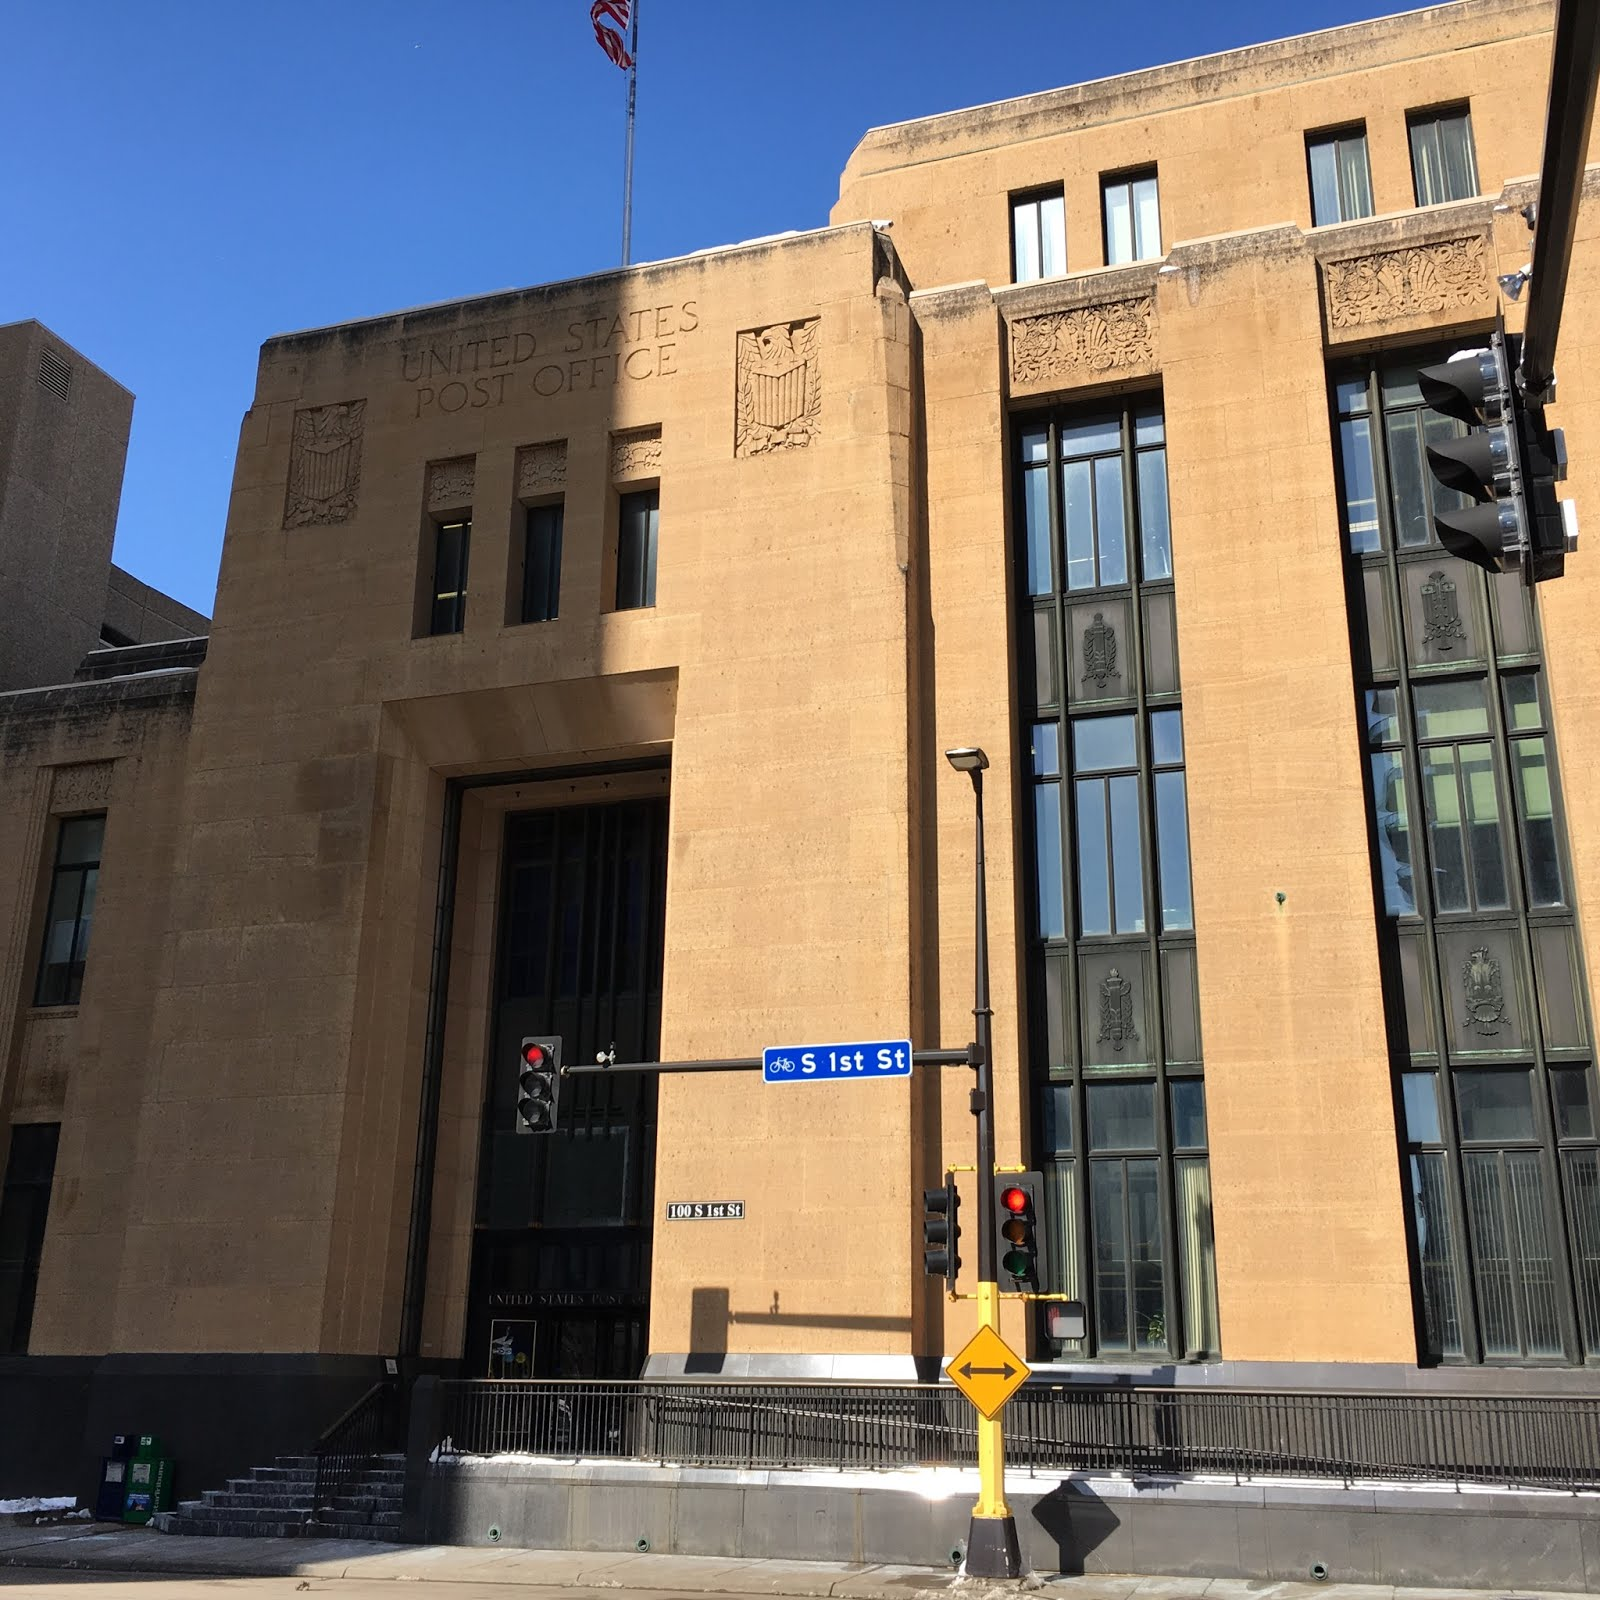 The main western public entrance to the Minneapolis Post Office